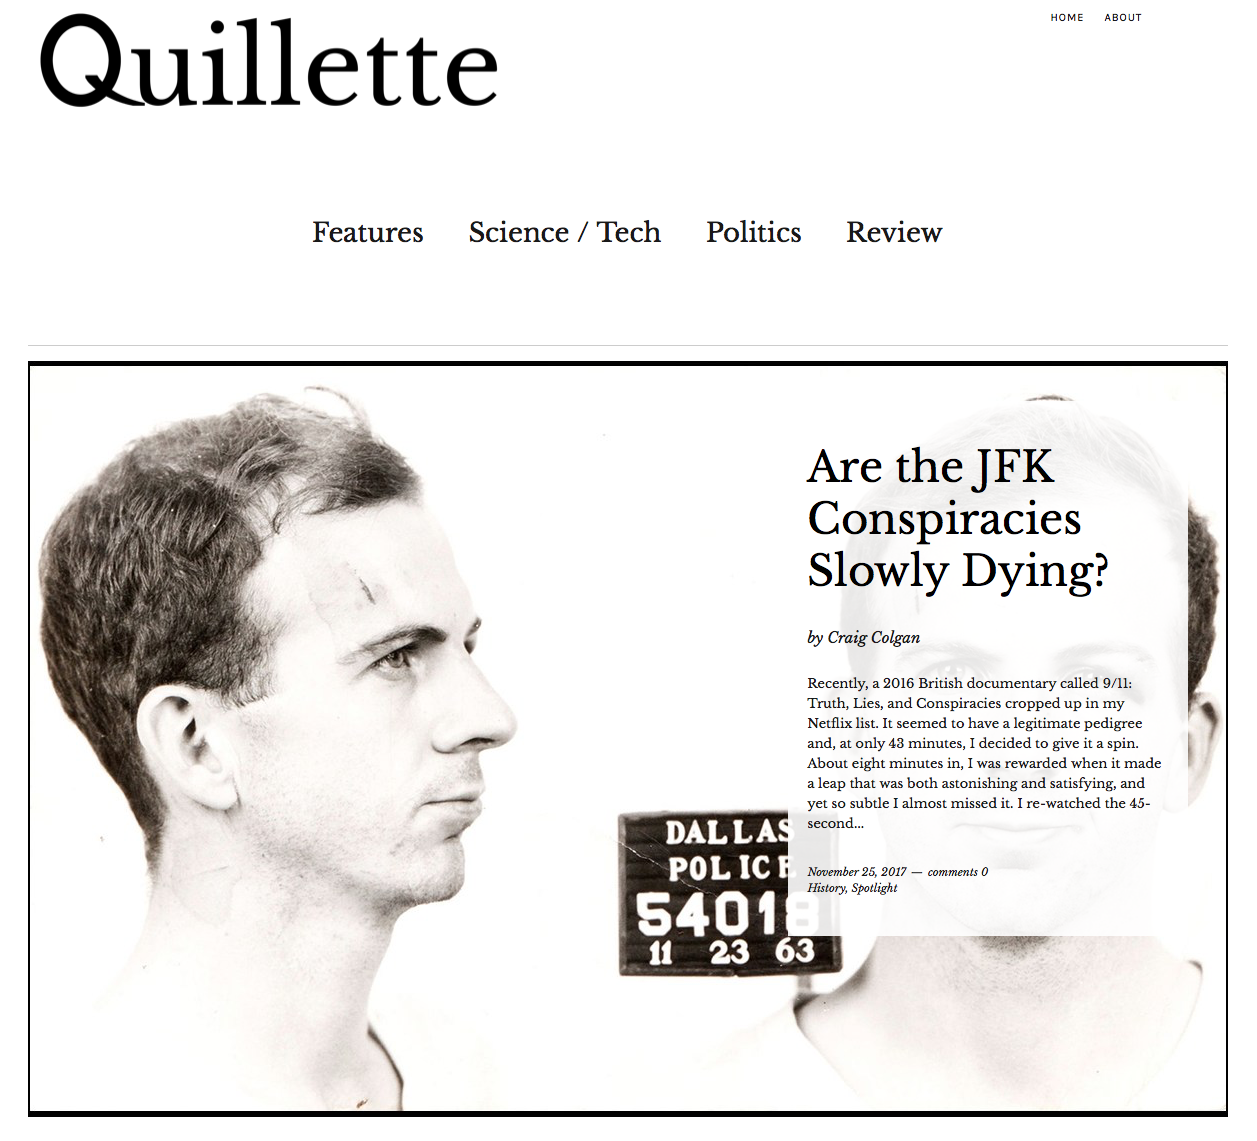 Quillette: The end of the JFK conspiracies